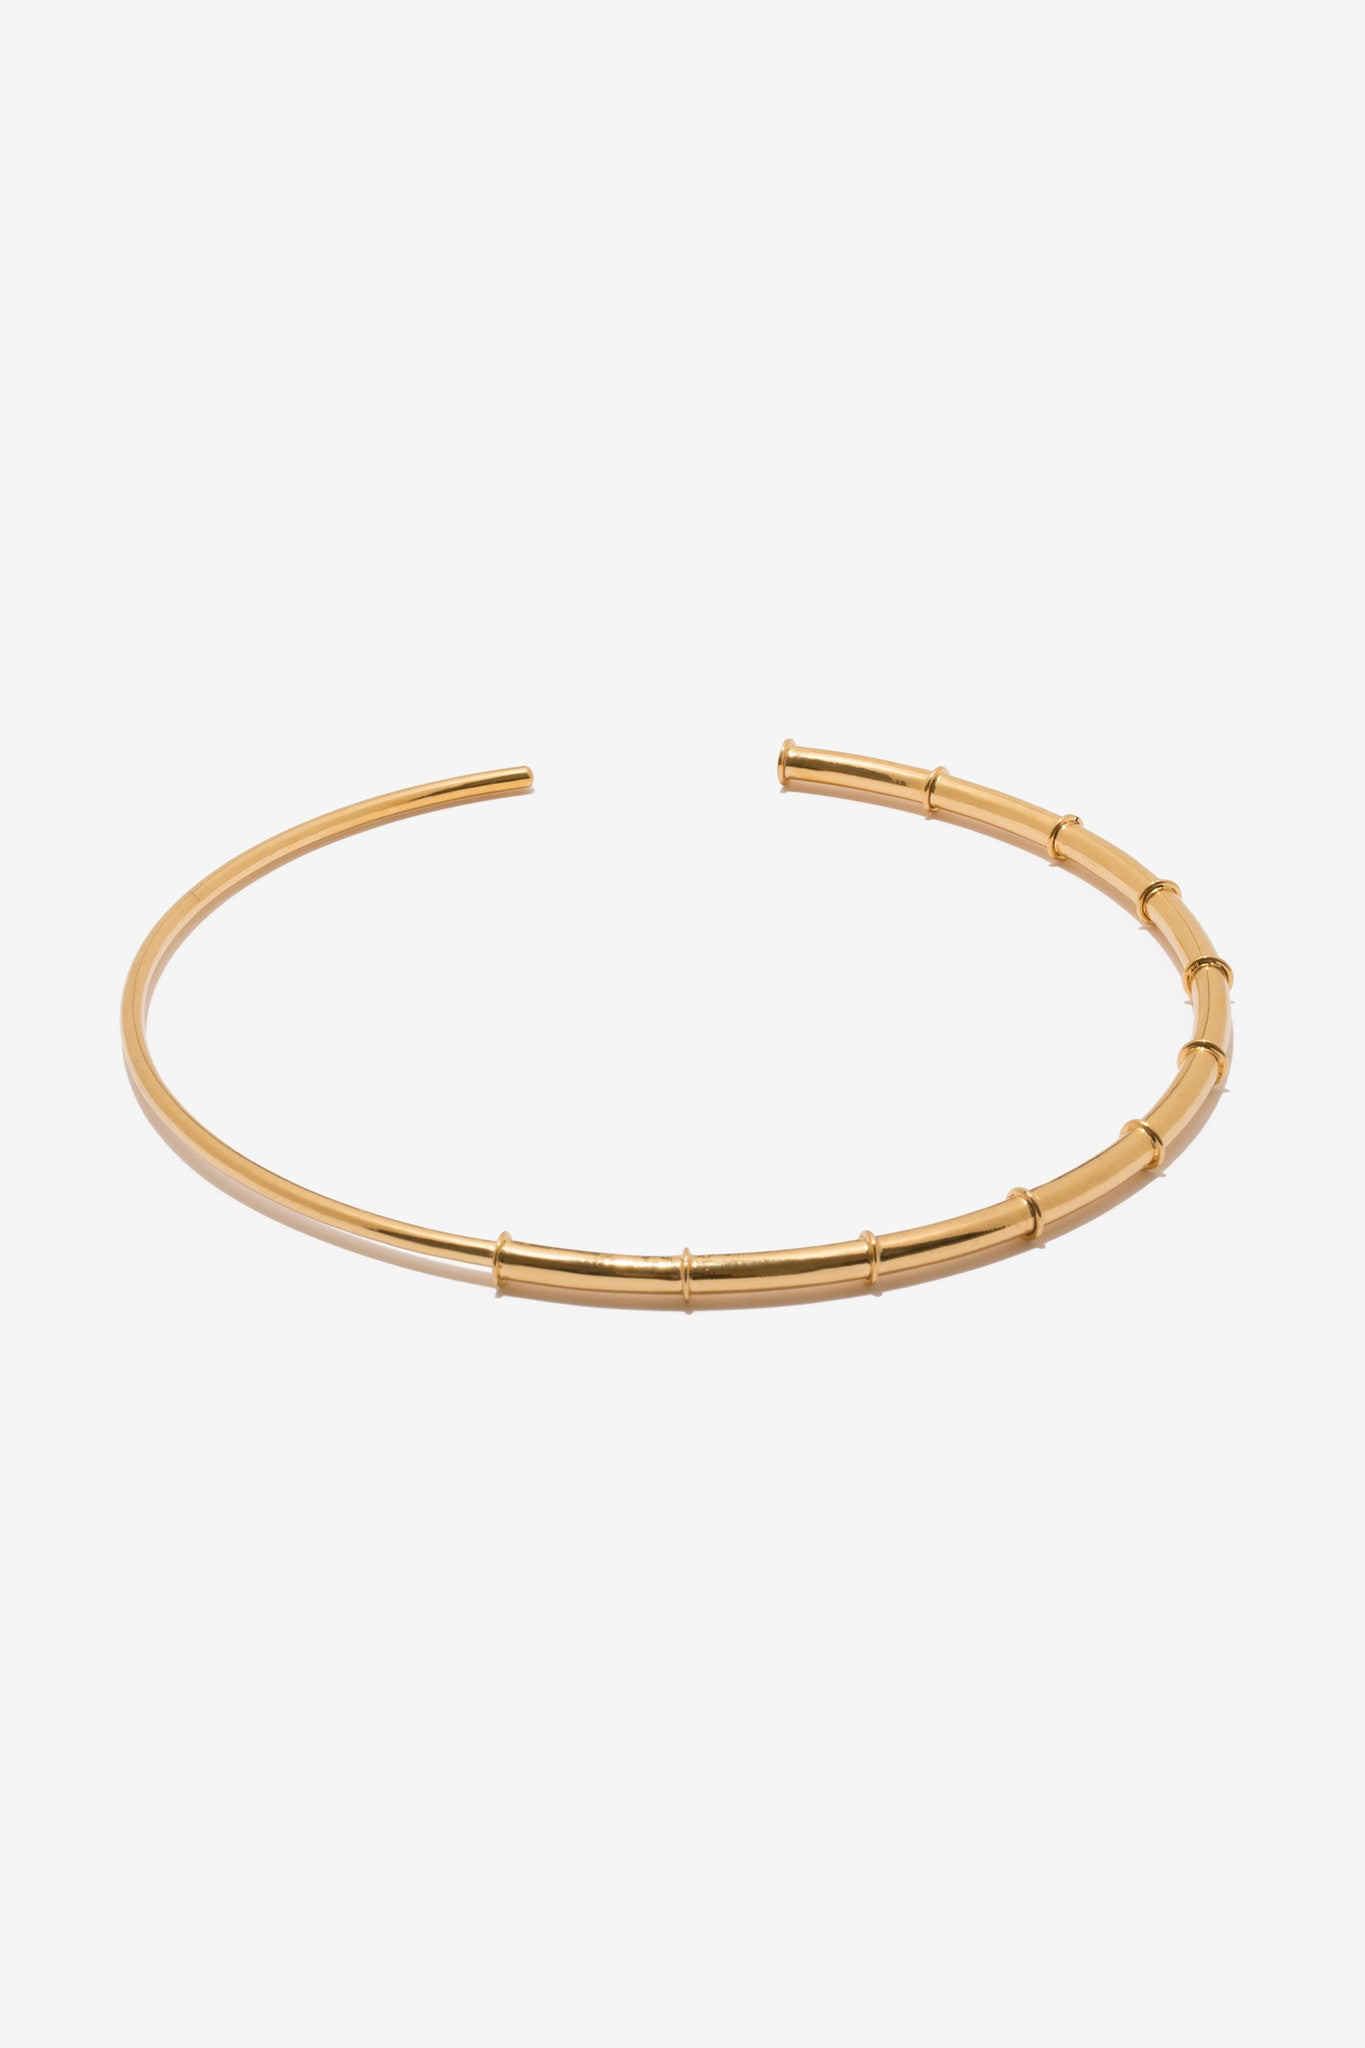 Isida Choker is 24k high polish gold plating and hand made in India by A Peace Treaty